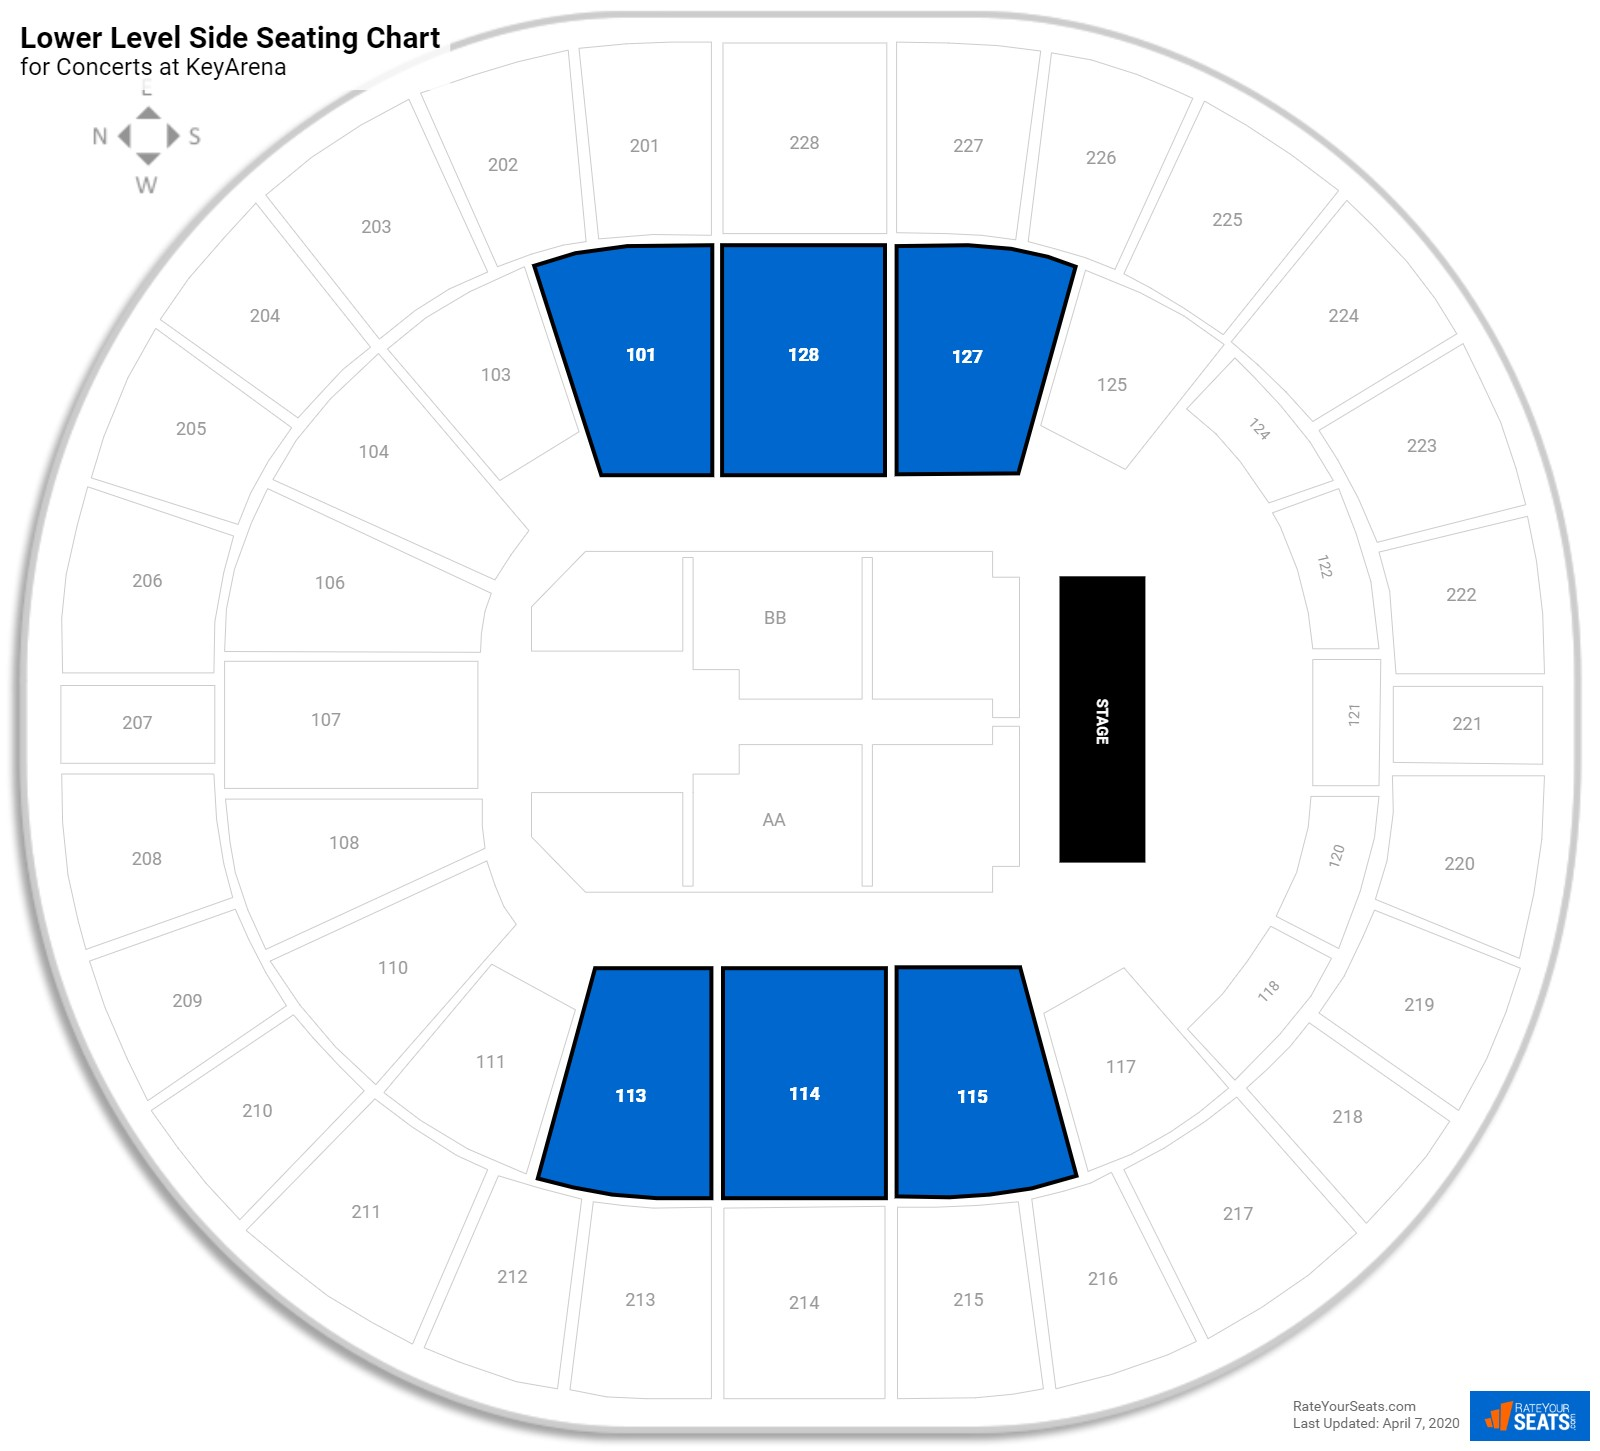 KeyArena Lower Level Side seating chart